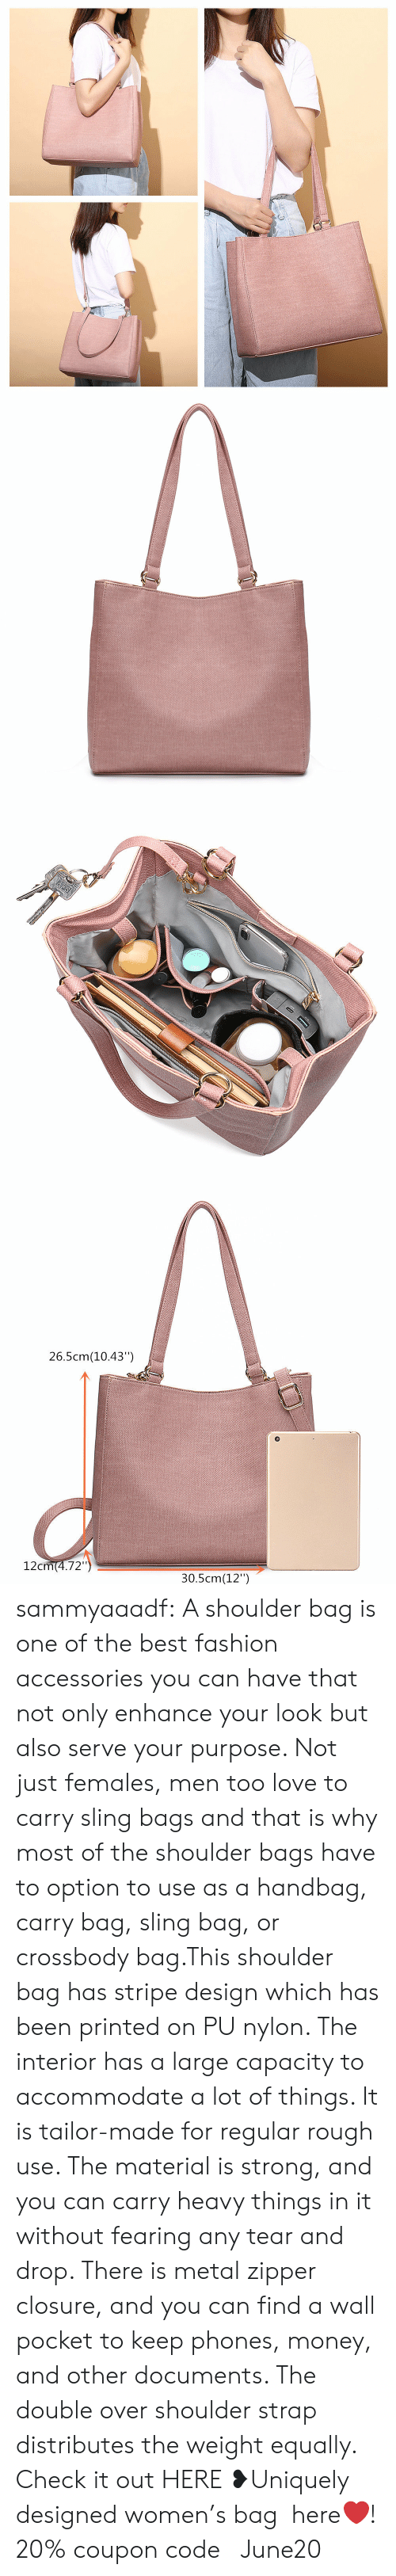 """Fashion, Love, and Money: 26.5cm(10.43"""")  12cm(4.72"""")  30.5cm(12"""") sammyaaadf: A shoulder bag is one of the best fashion accessories you can have that not only enhance your look but also serve your purpose. Not just females, men too love to carry sling bags and that is why most of the shoulder bags have to option to use as a handbag, carry bag, sling bag, or crossbody bag.This shoulder bag has stripe design which has been printed on PU nylon. The interior has a large capacity to accommodate a lot of things. It is tailor-made for regular rough use. The material is strong, and you can carry heavy things in it without fearing any tear and drop. There is metal zipper closure, and you can find a wall pocket to keep phones, money, and other documents. The double over shoulder strap distributes the weight equally.  Check it out HERE ❥Uniquely designed women's bag here❤! 20% coupon code: June20"""